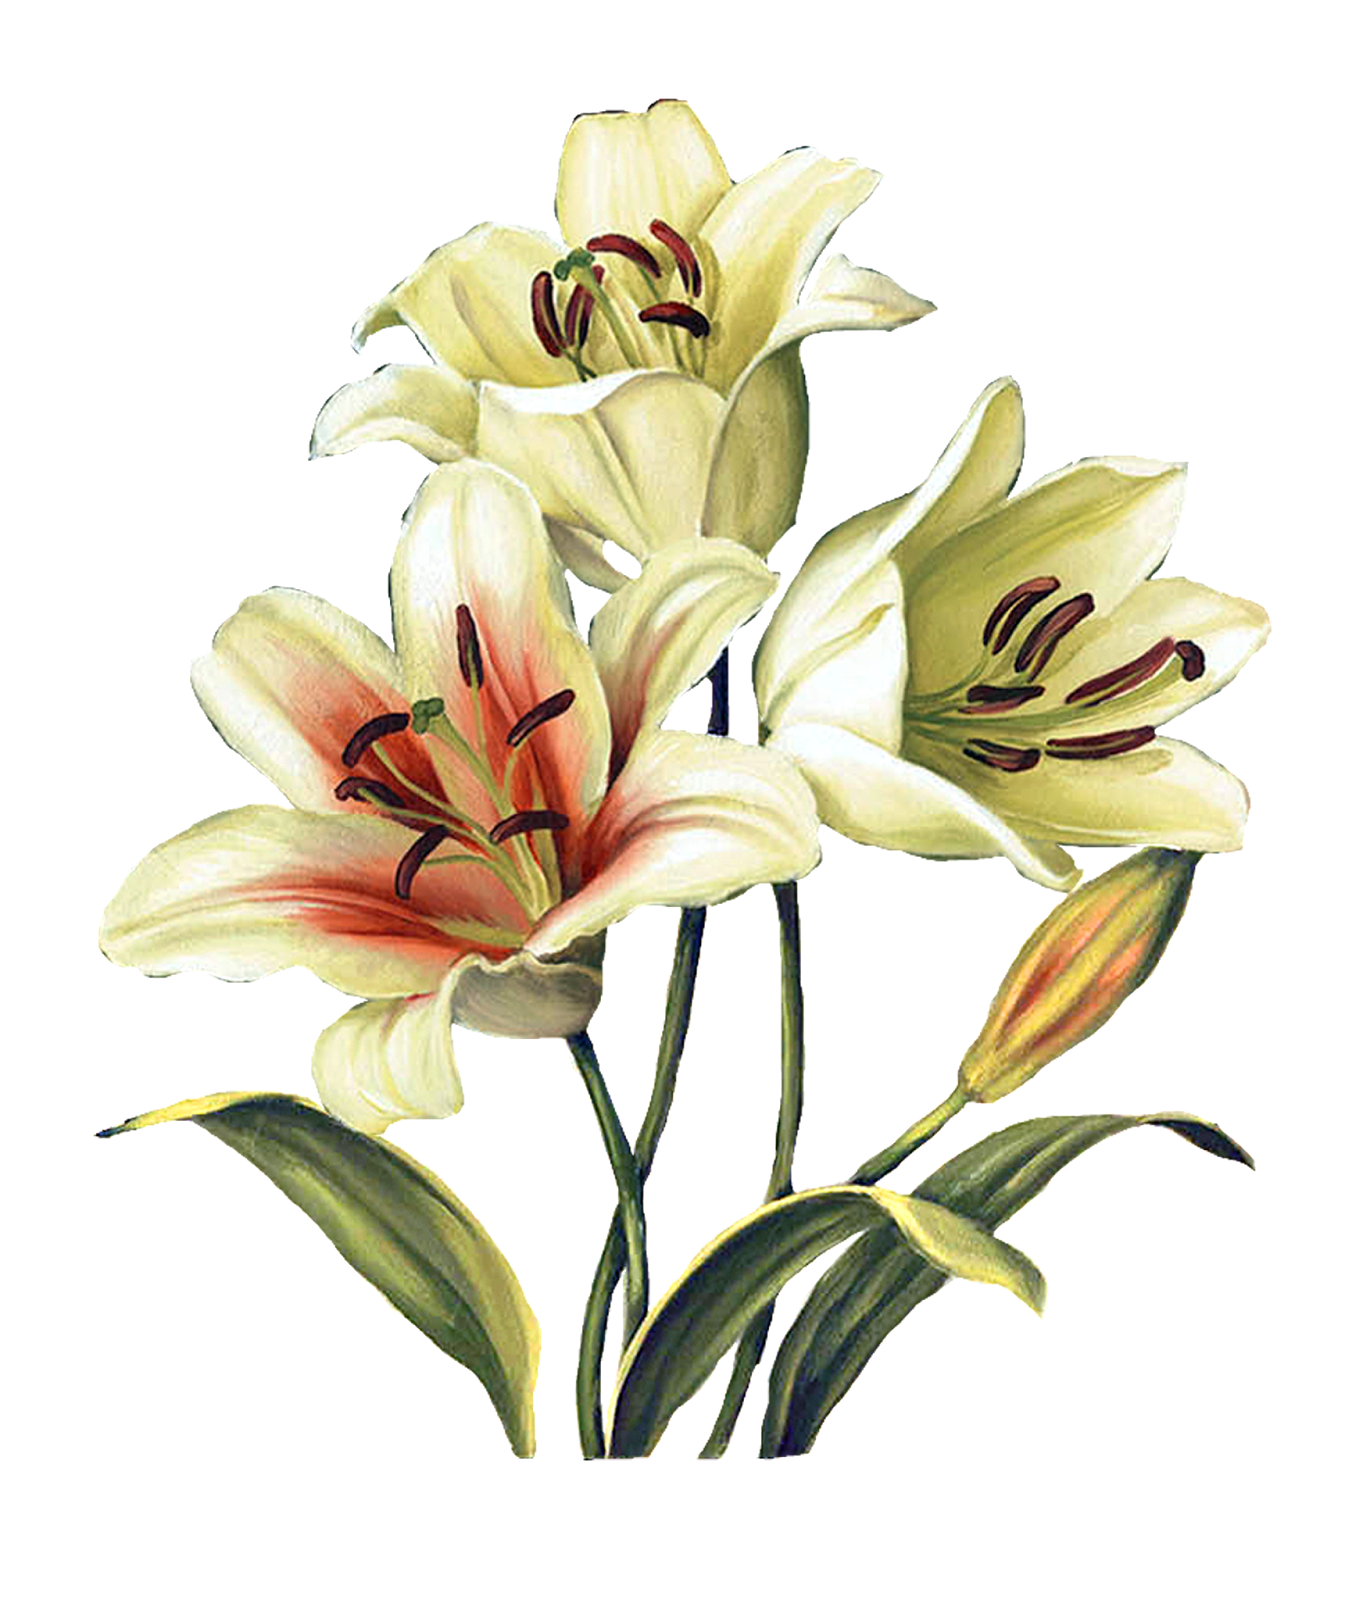 Decoupage flower painting png. Oranges clipart lilies